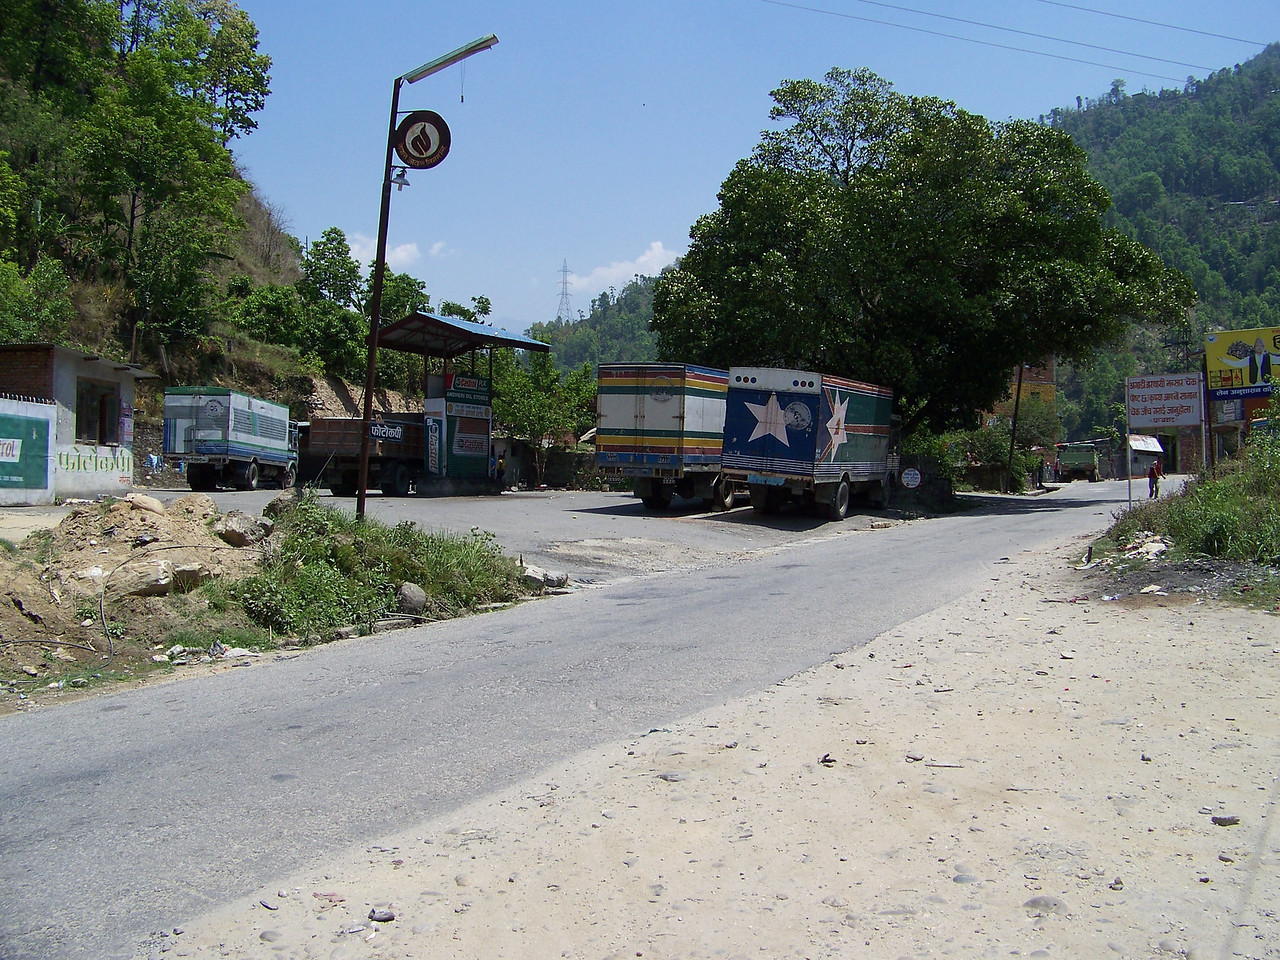 0659 - Road and Businesses across the road from the River View Restaurant overlooking the Bhote Koshi River - Andheri Shidhupalchowk Nepal.JPG